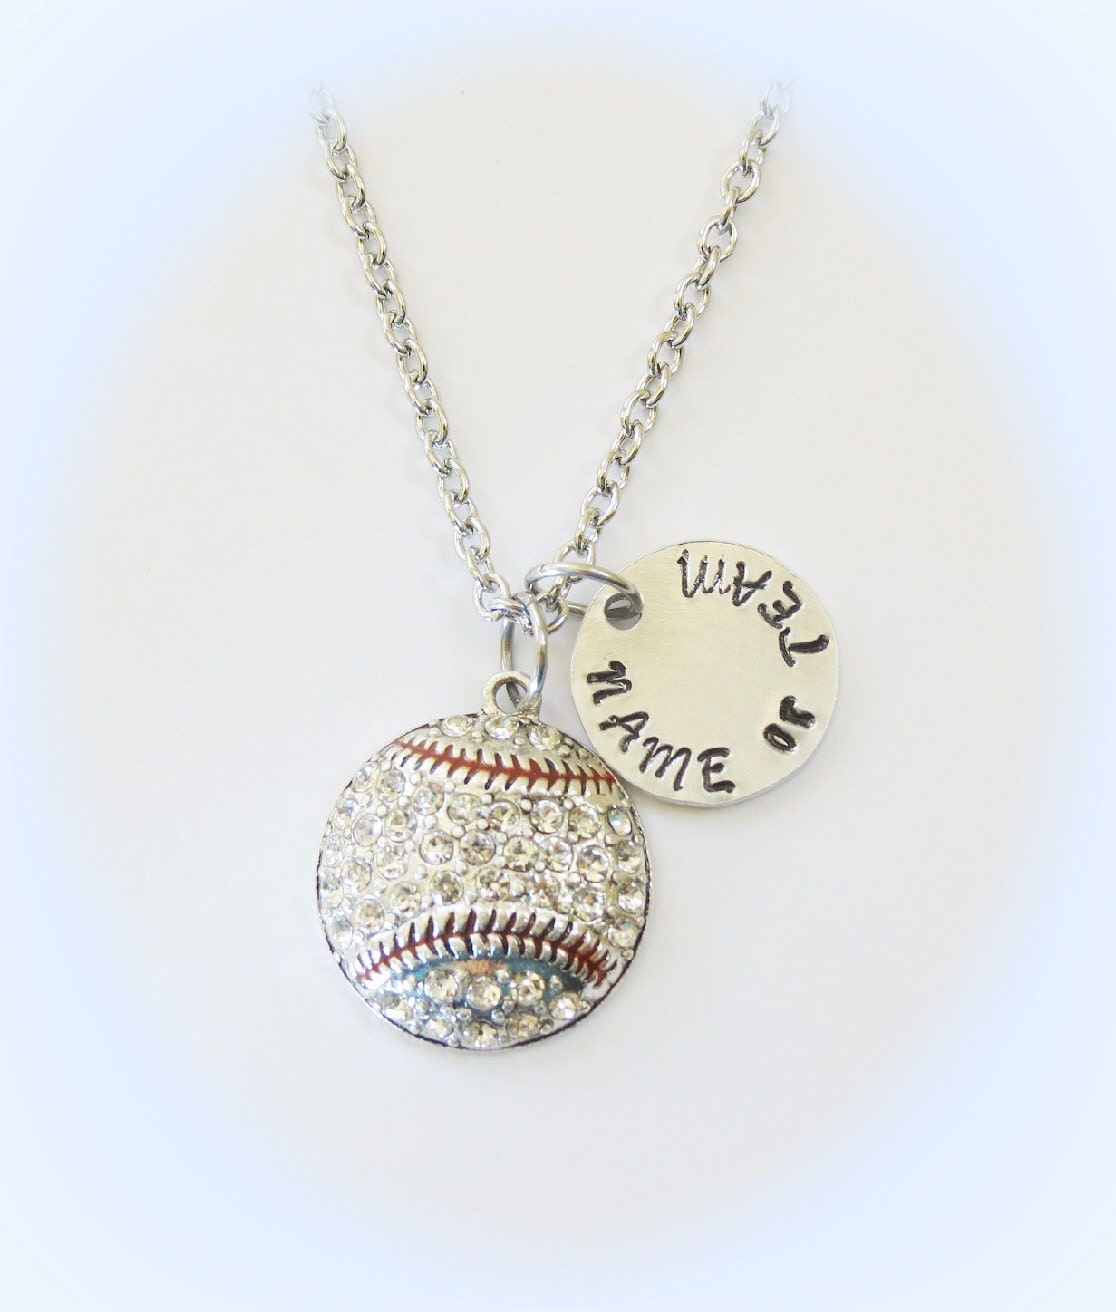 with hand a designmejewelry necklace personalized softball custom buy to by numbe made baseball